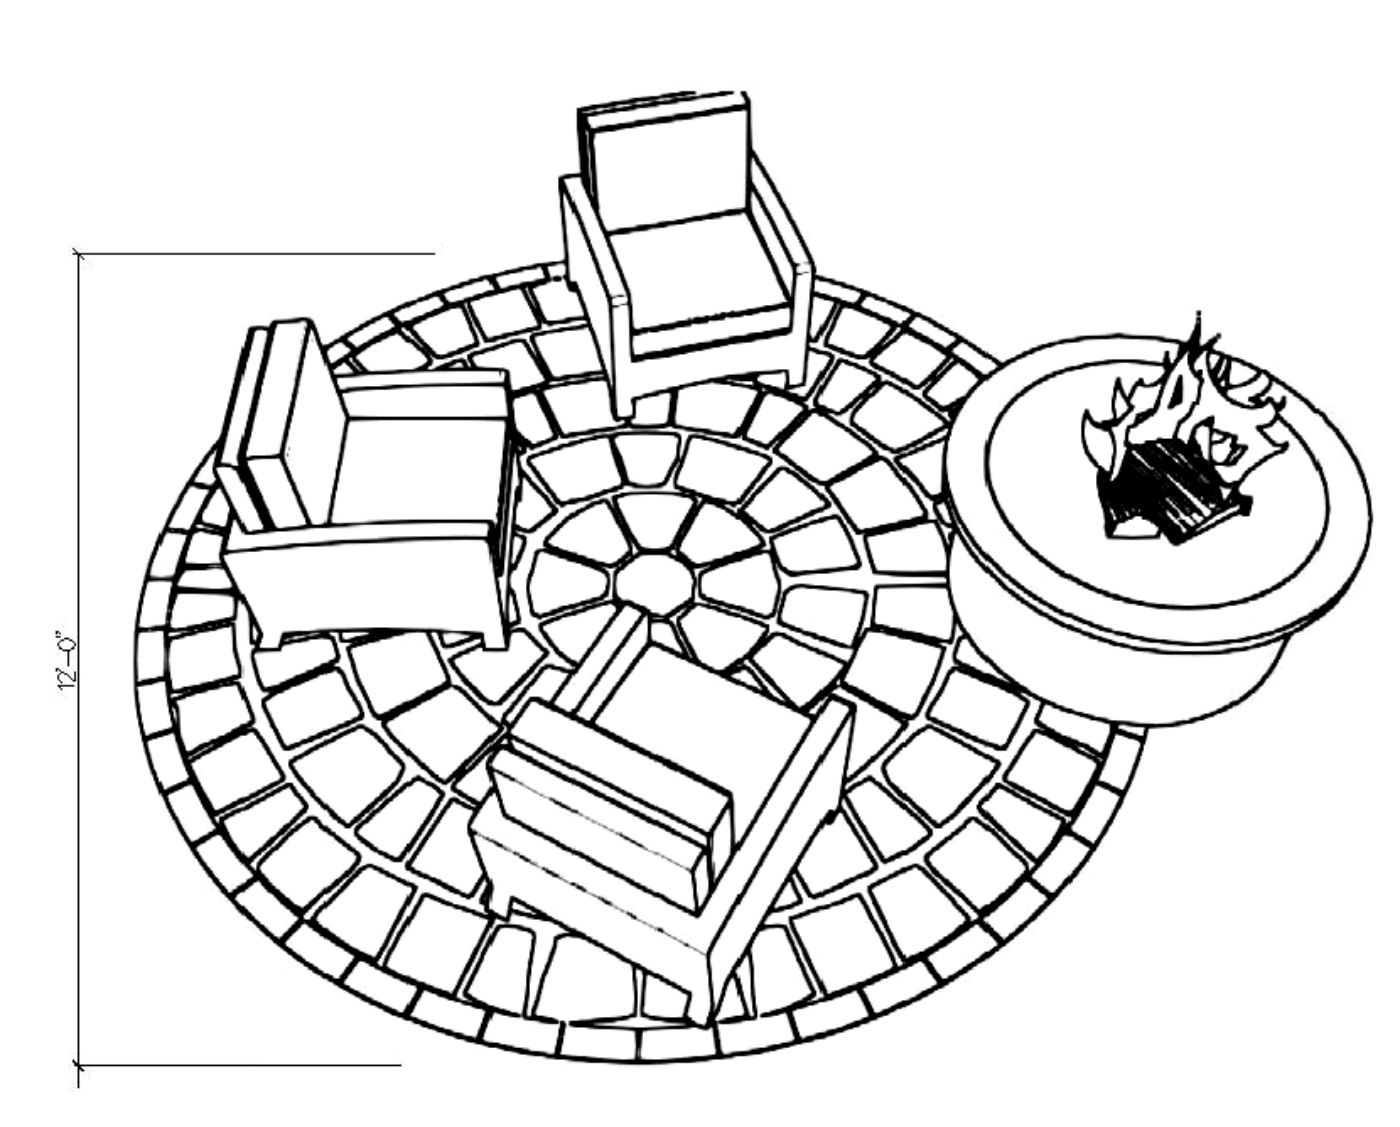 1400x1127 Fall Promotion Archadeck Outdoor Living With Patio Drawing Patio